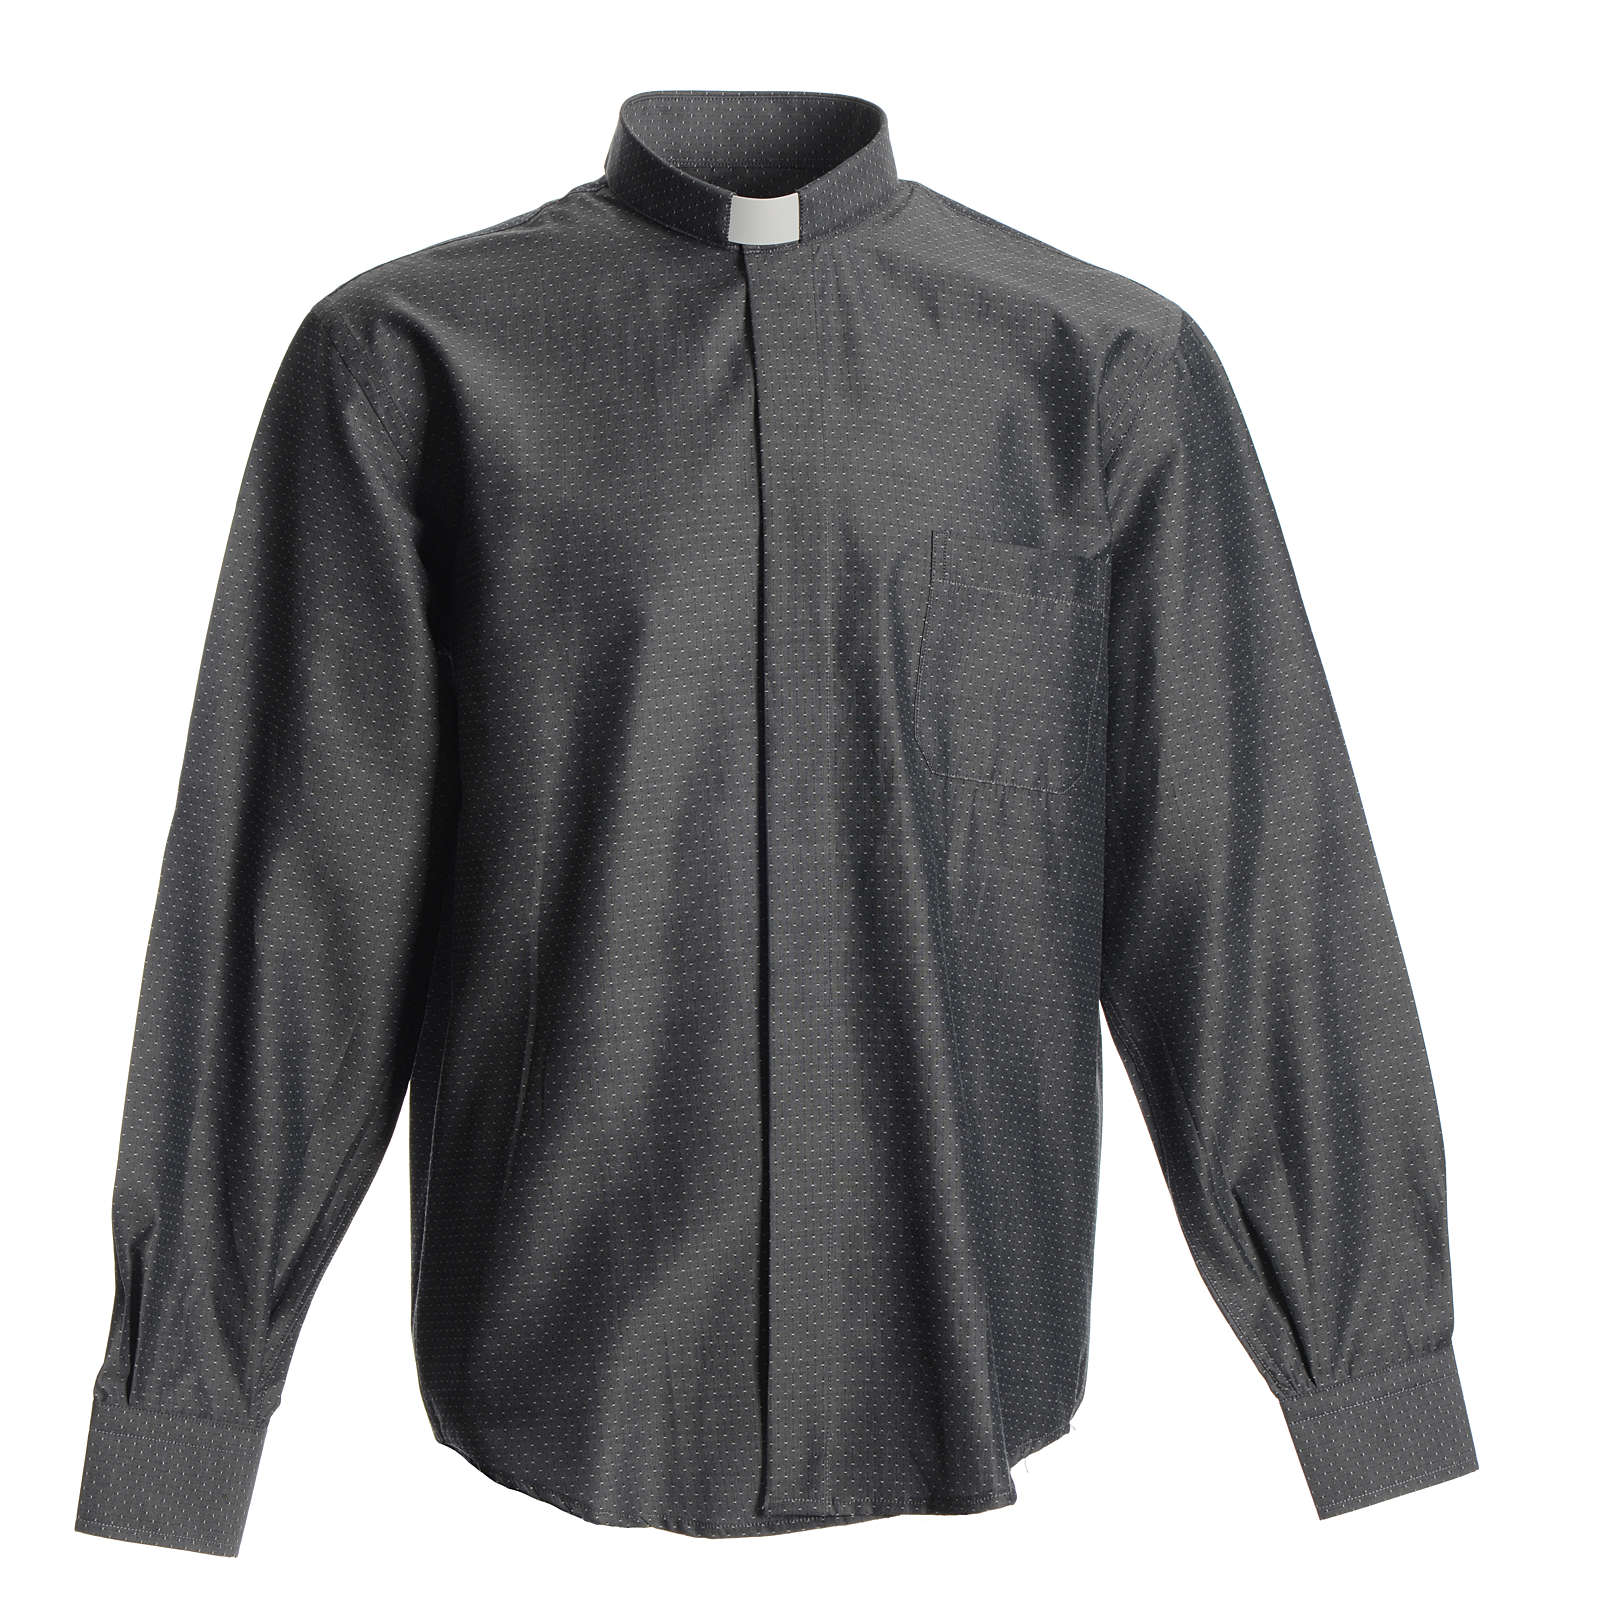 Clergyman shirt in grey polyester cotton 4